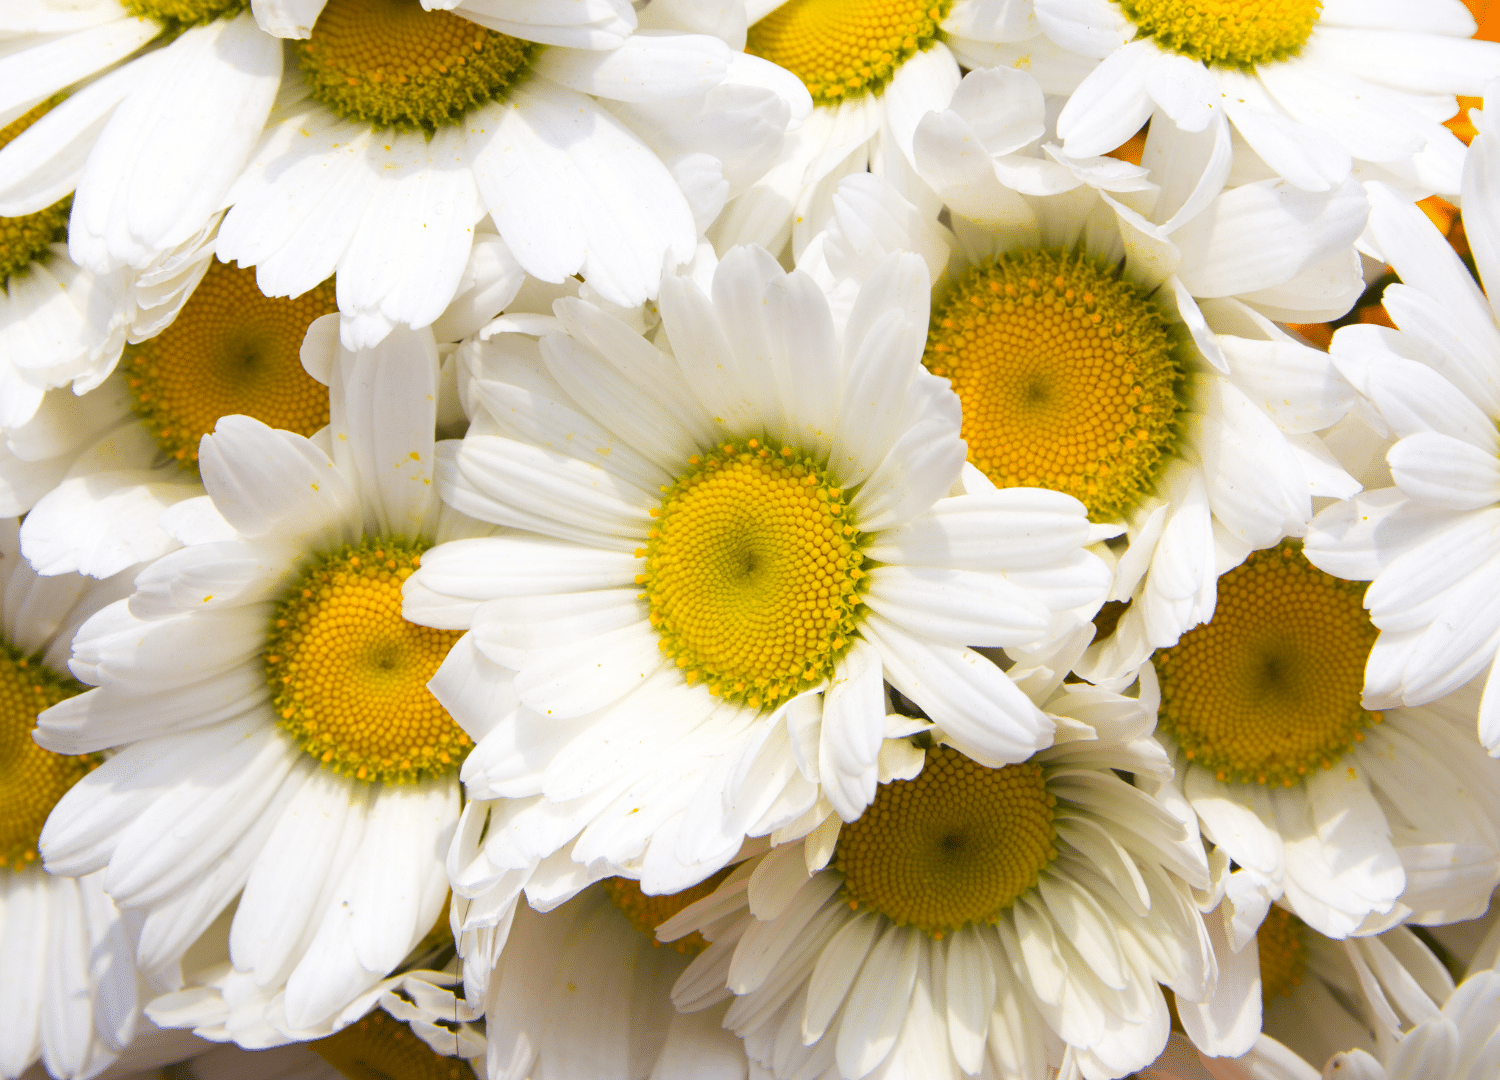 Close up picture of some white and yellow perennial flowers